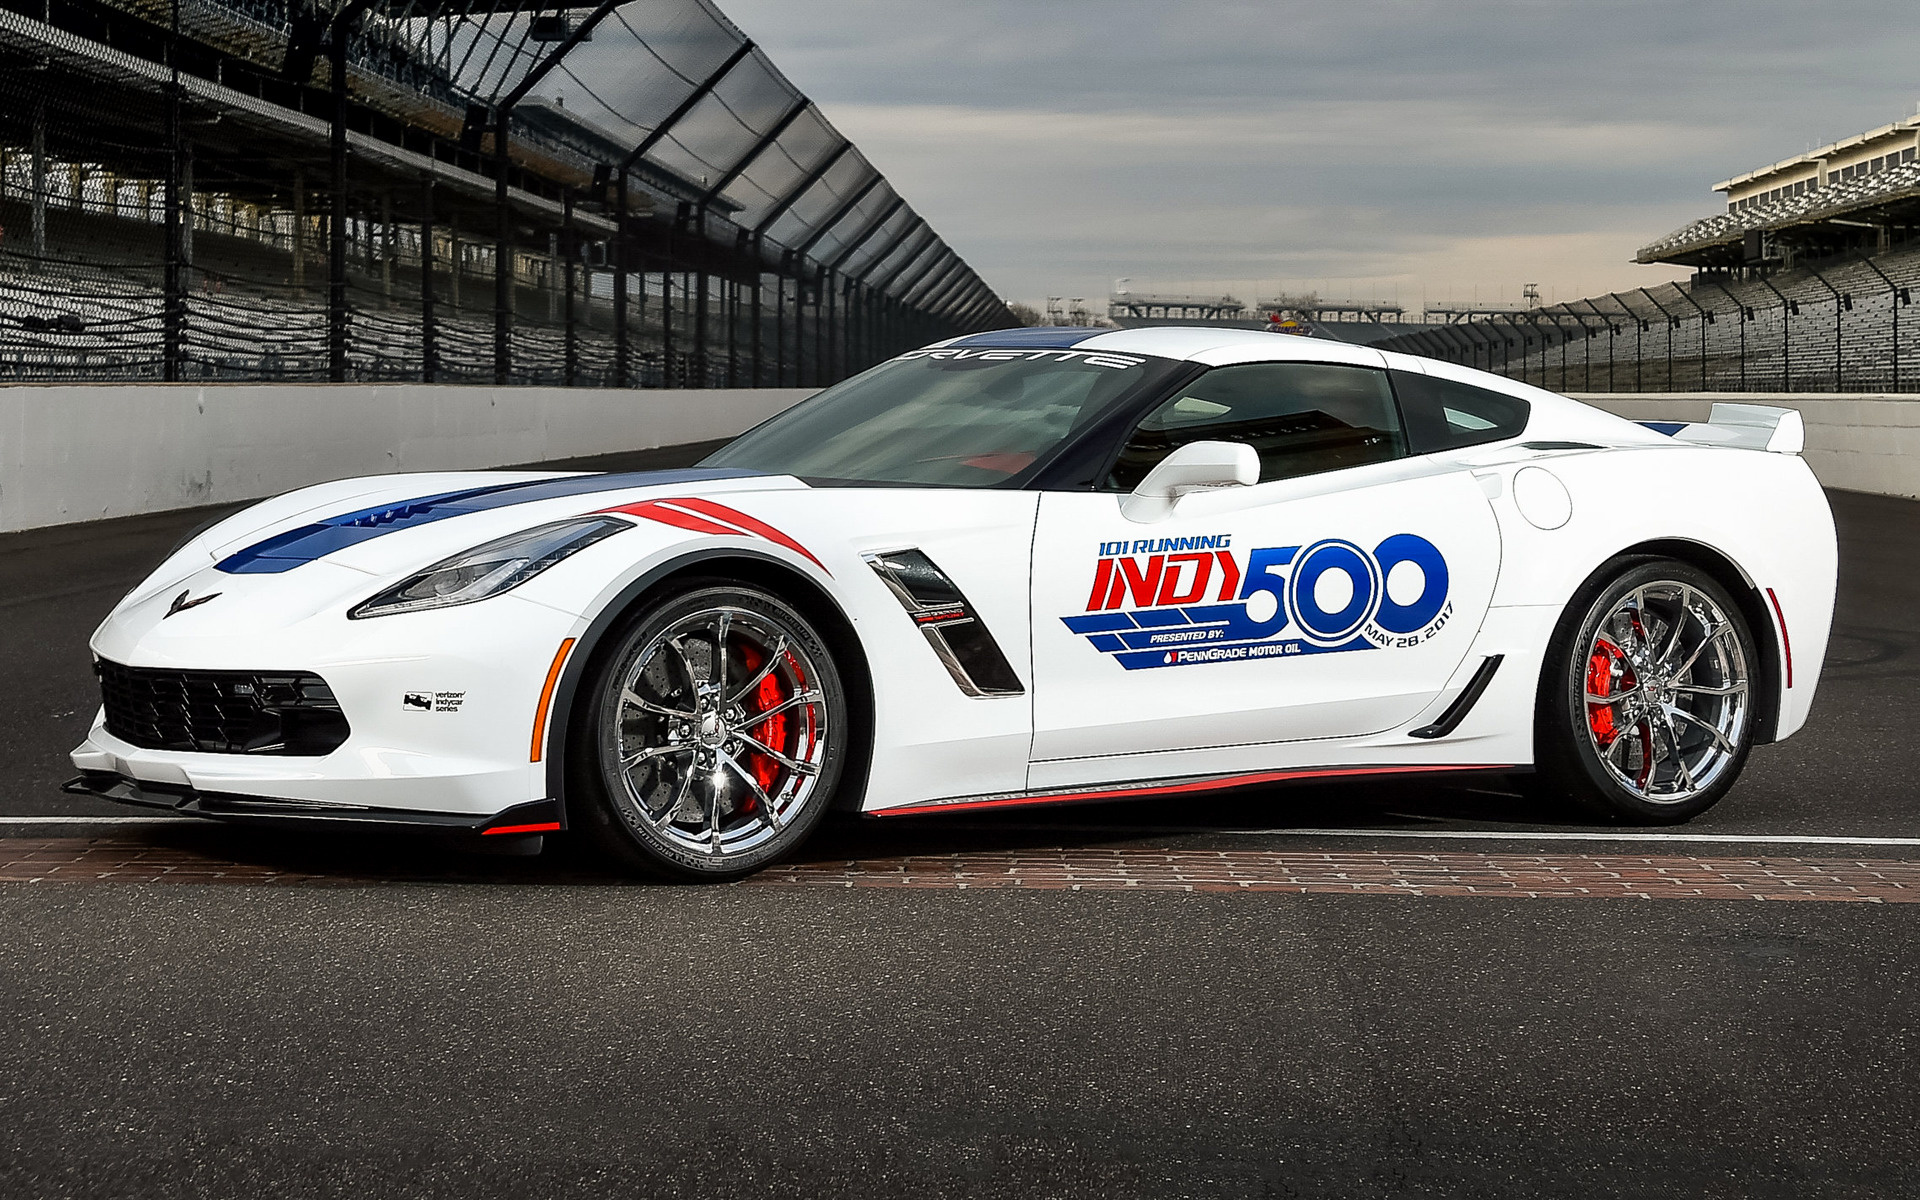 2018 Corvette Grand Sport >> 2017 Chevrolet Corvette Grand Sport Indy 500 Pace Car - Wallpapers and HD Images | Car Pixel